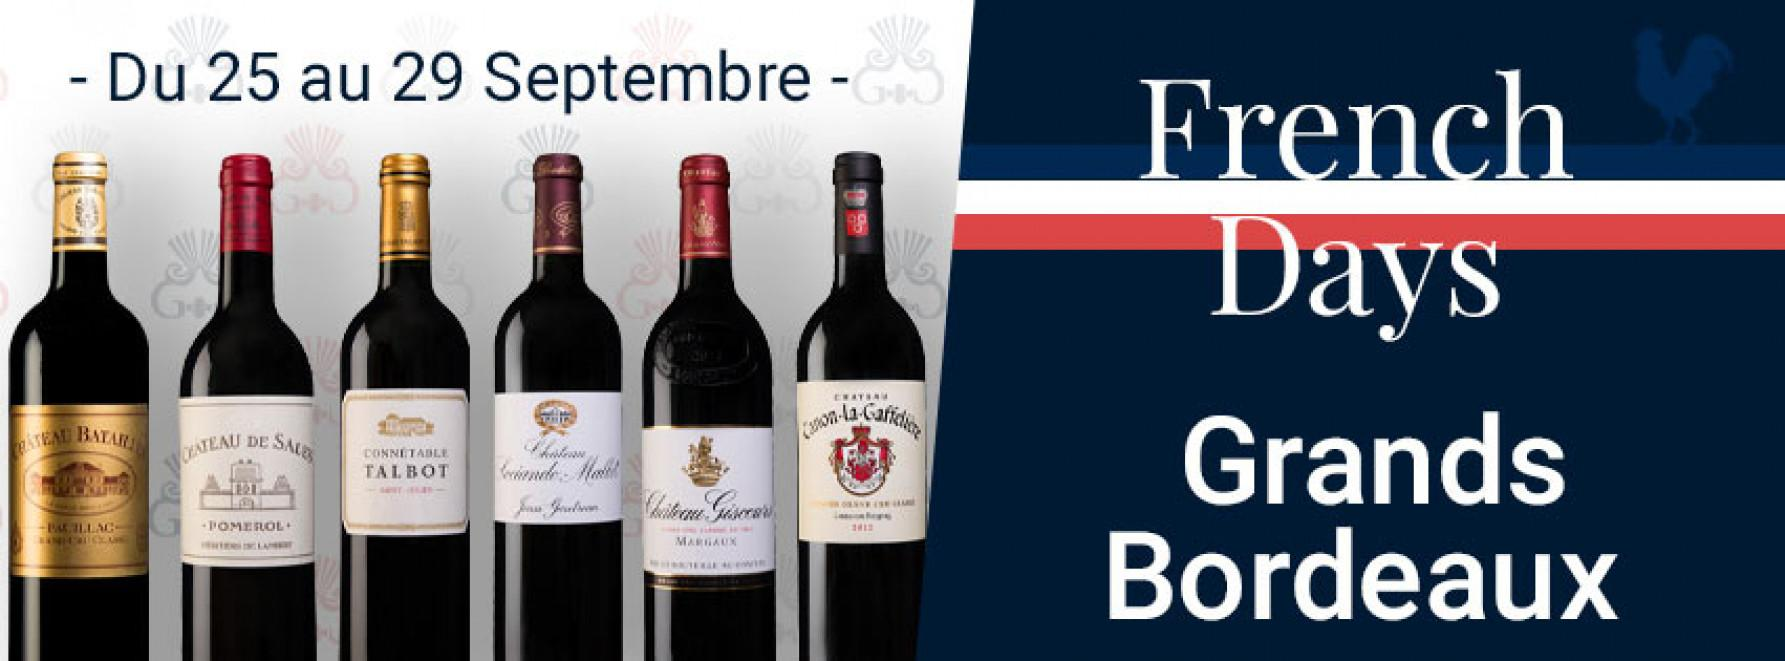 French Days | Grands Bordeaux